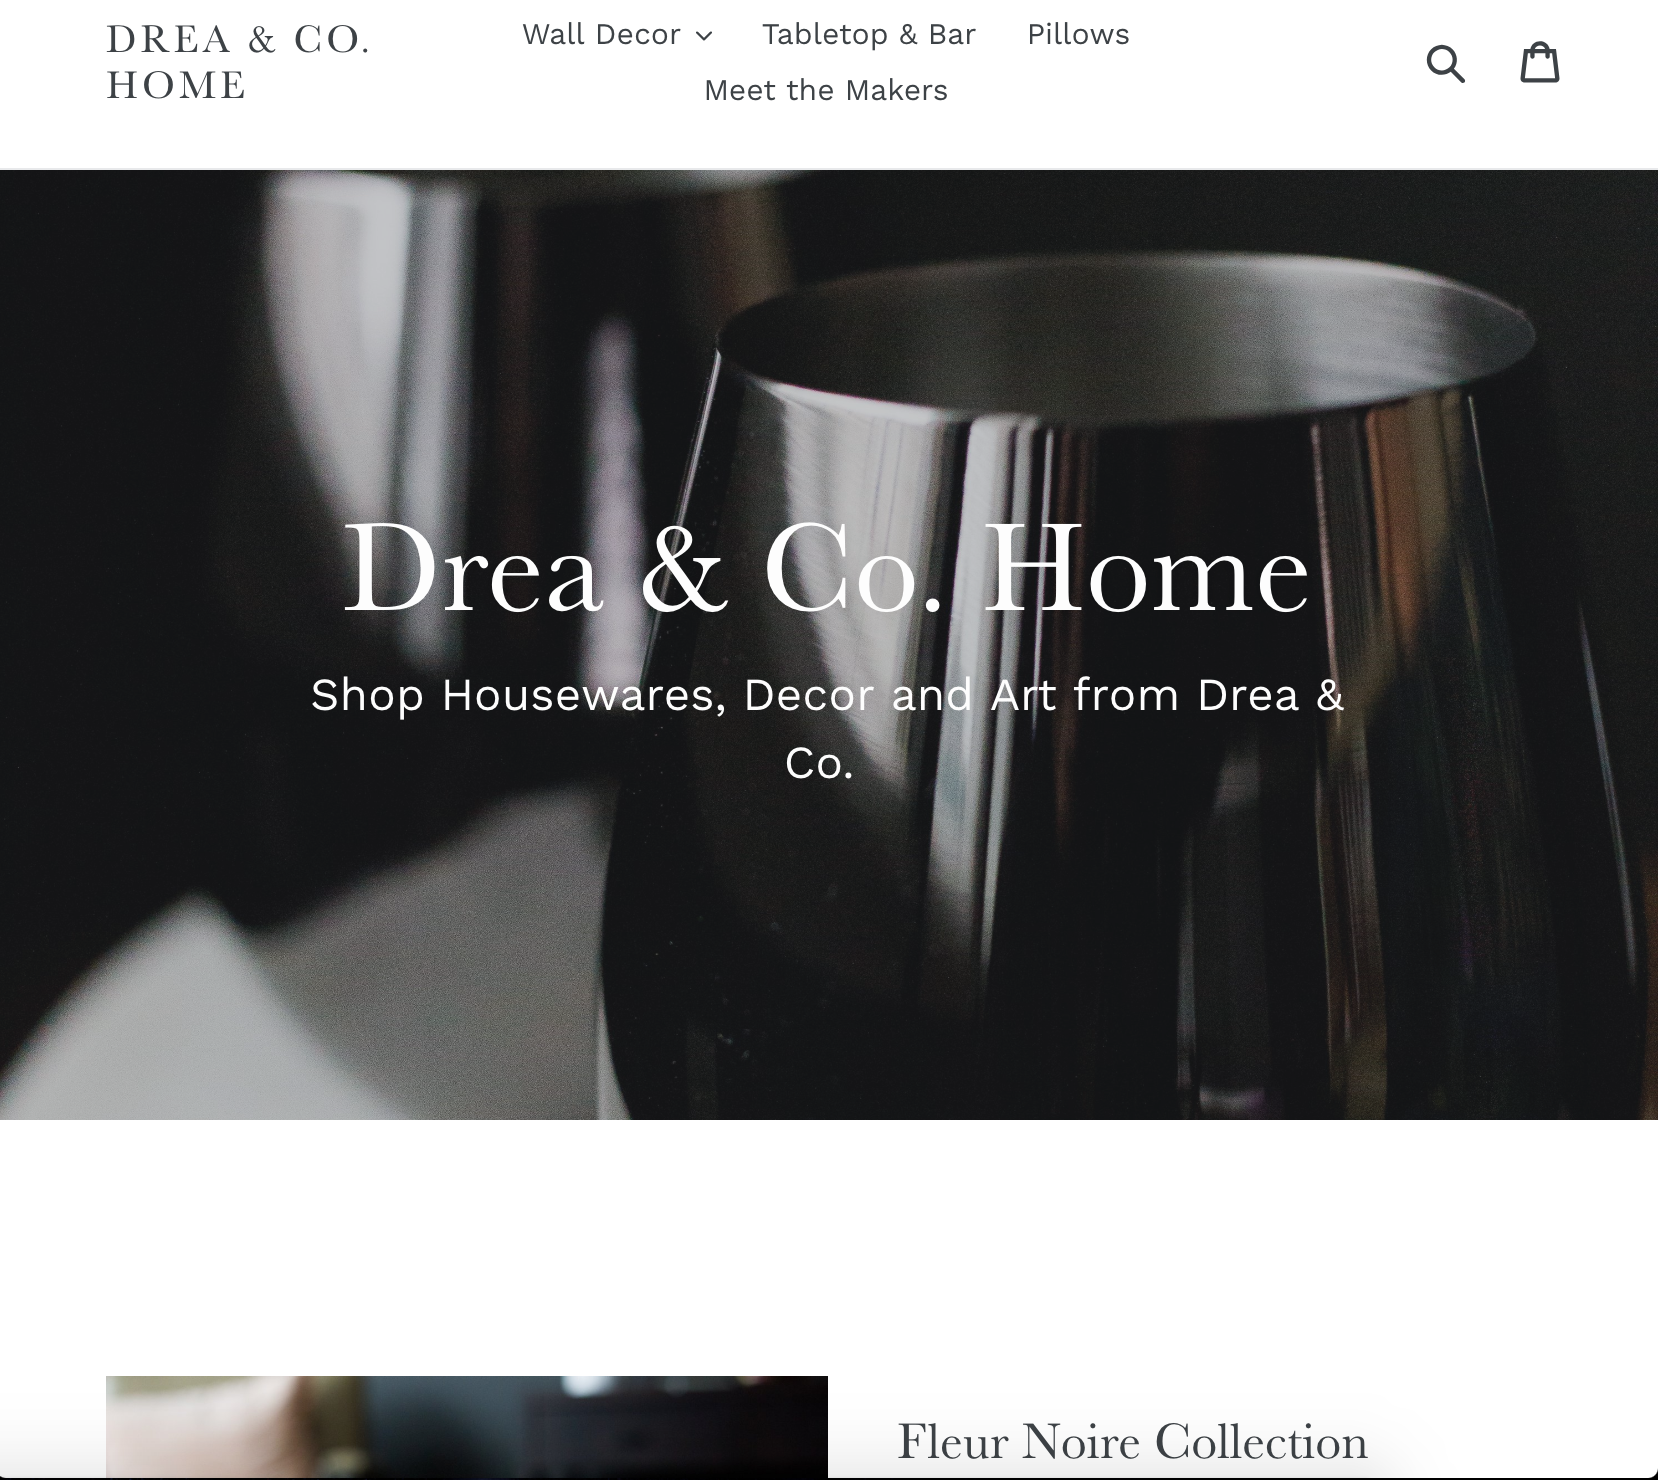 E-Commerce - In 2018 I successfully designed and executed all web content, marketing collateral and product sourcing for the launch of Drea & Co. Home - an online interior decor boutique. Our launch campaign, Fleur Noire, took the audience through a series of dynamic visuals, sounds, events and themes to prepare for launch activities. The launch resulted in high opening traffic, a significant increase in email marketing leads, brand awareness and positive product sales.